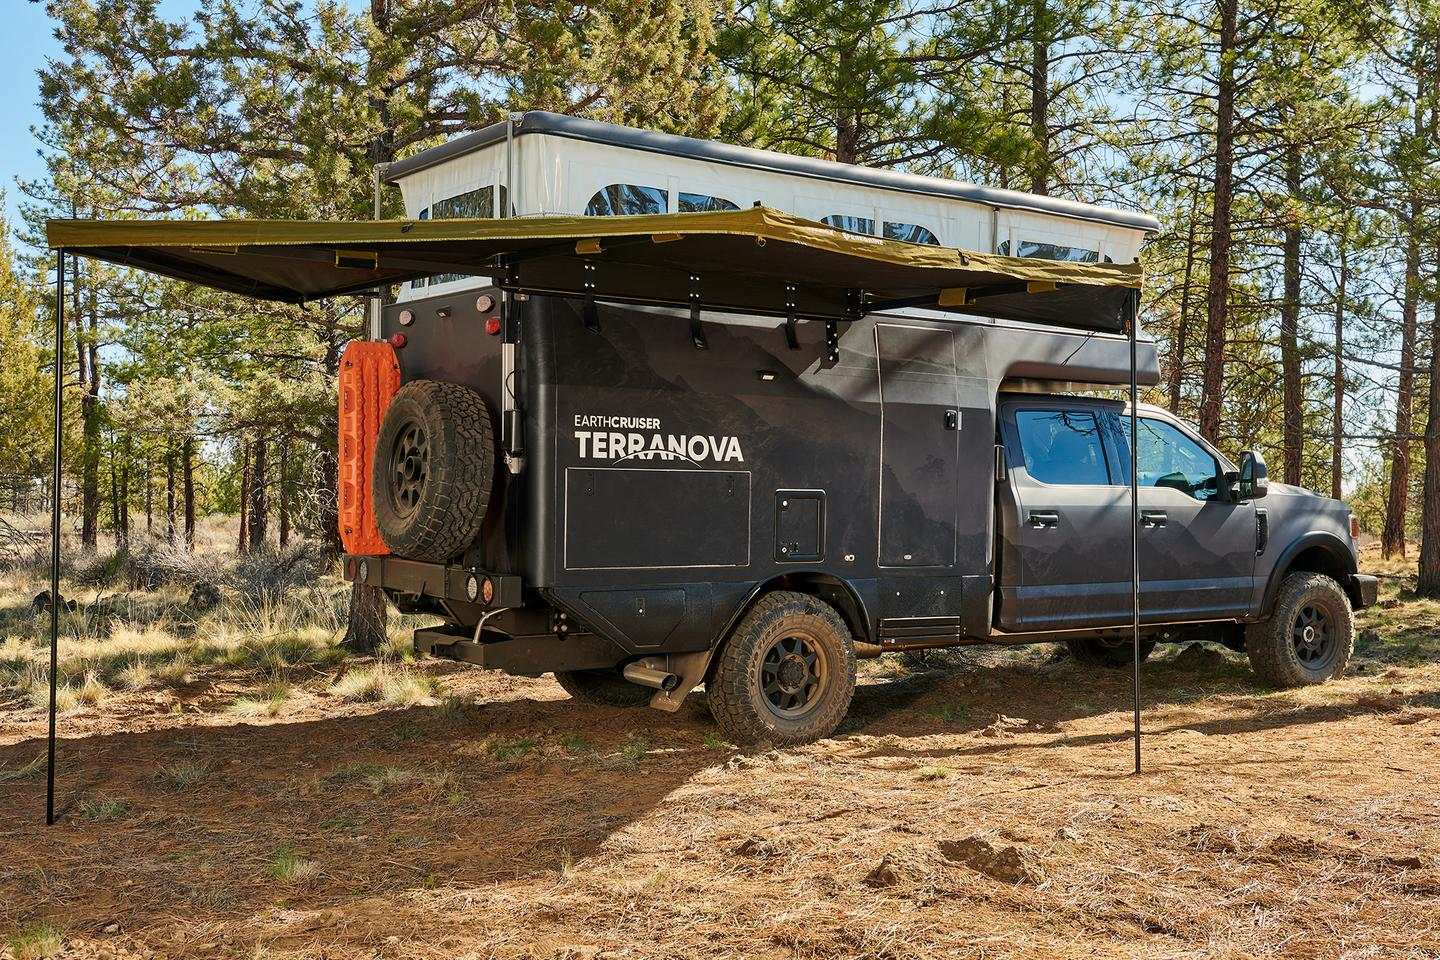 EarthCruiser Terranova with available awning set up and ready to camp